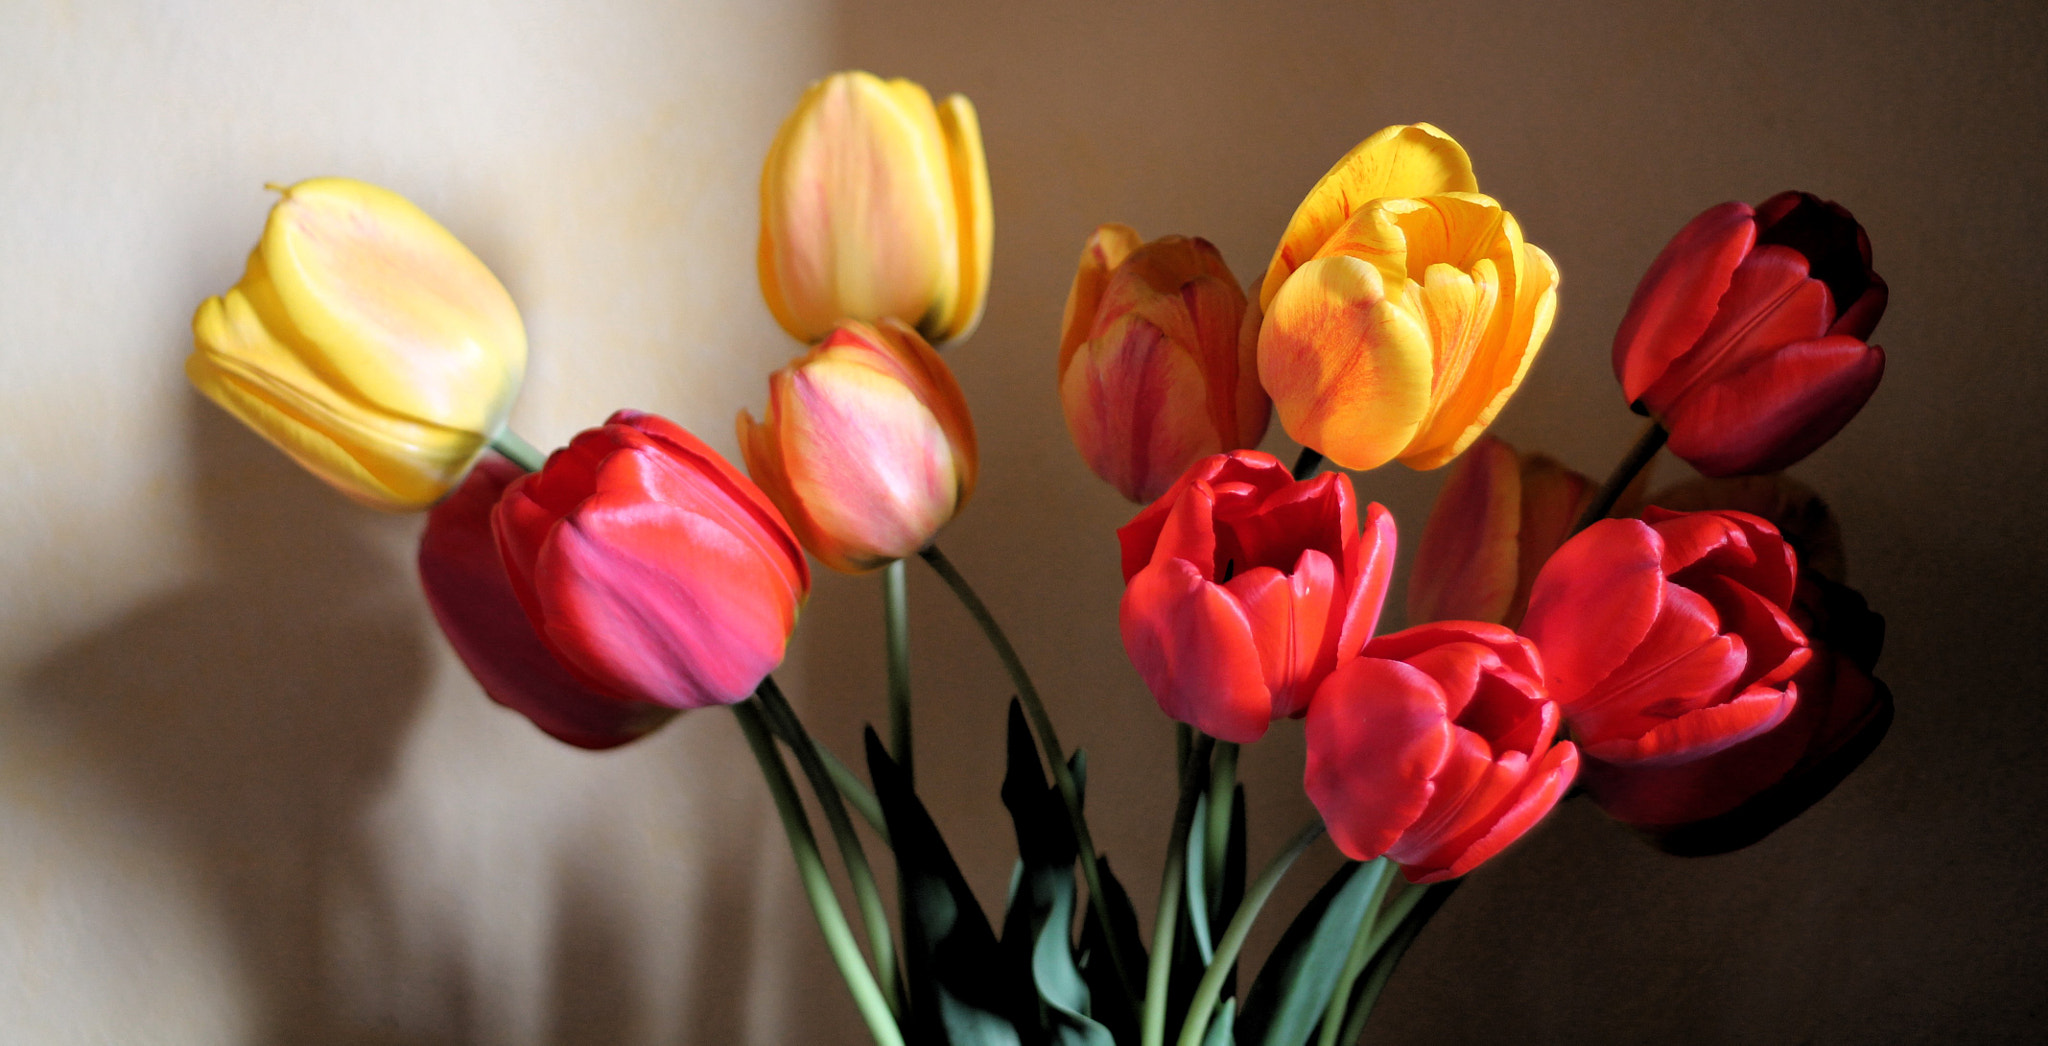 Photograph Tulips by Emi Pi on 500px